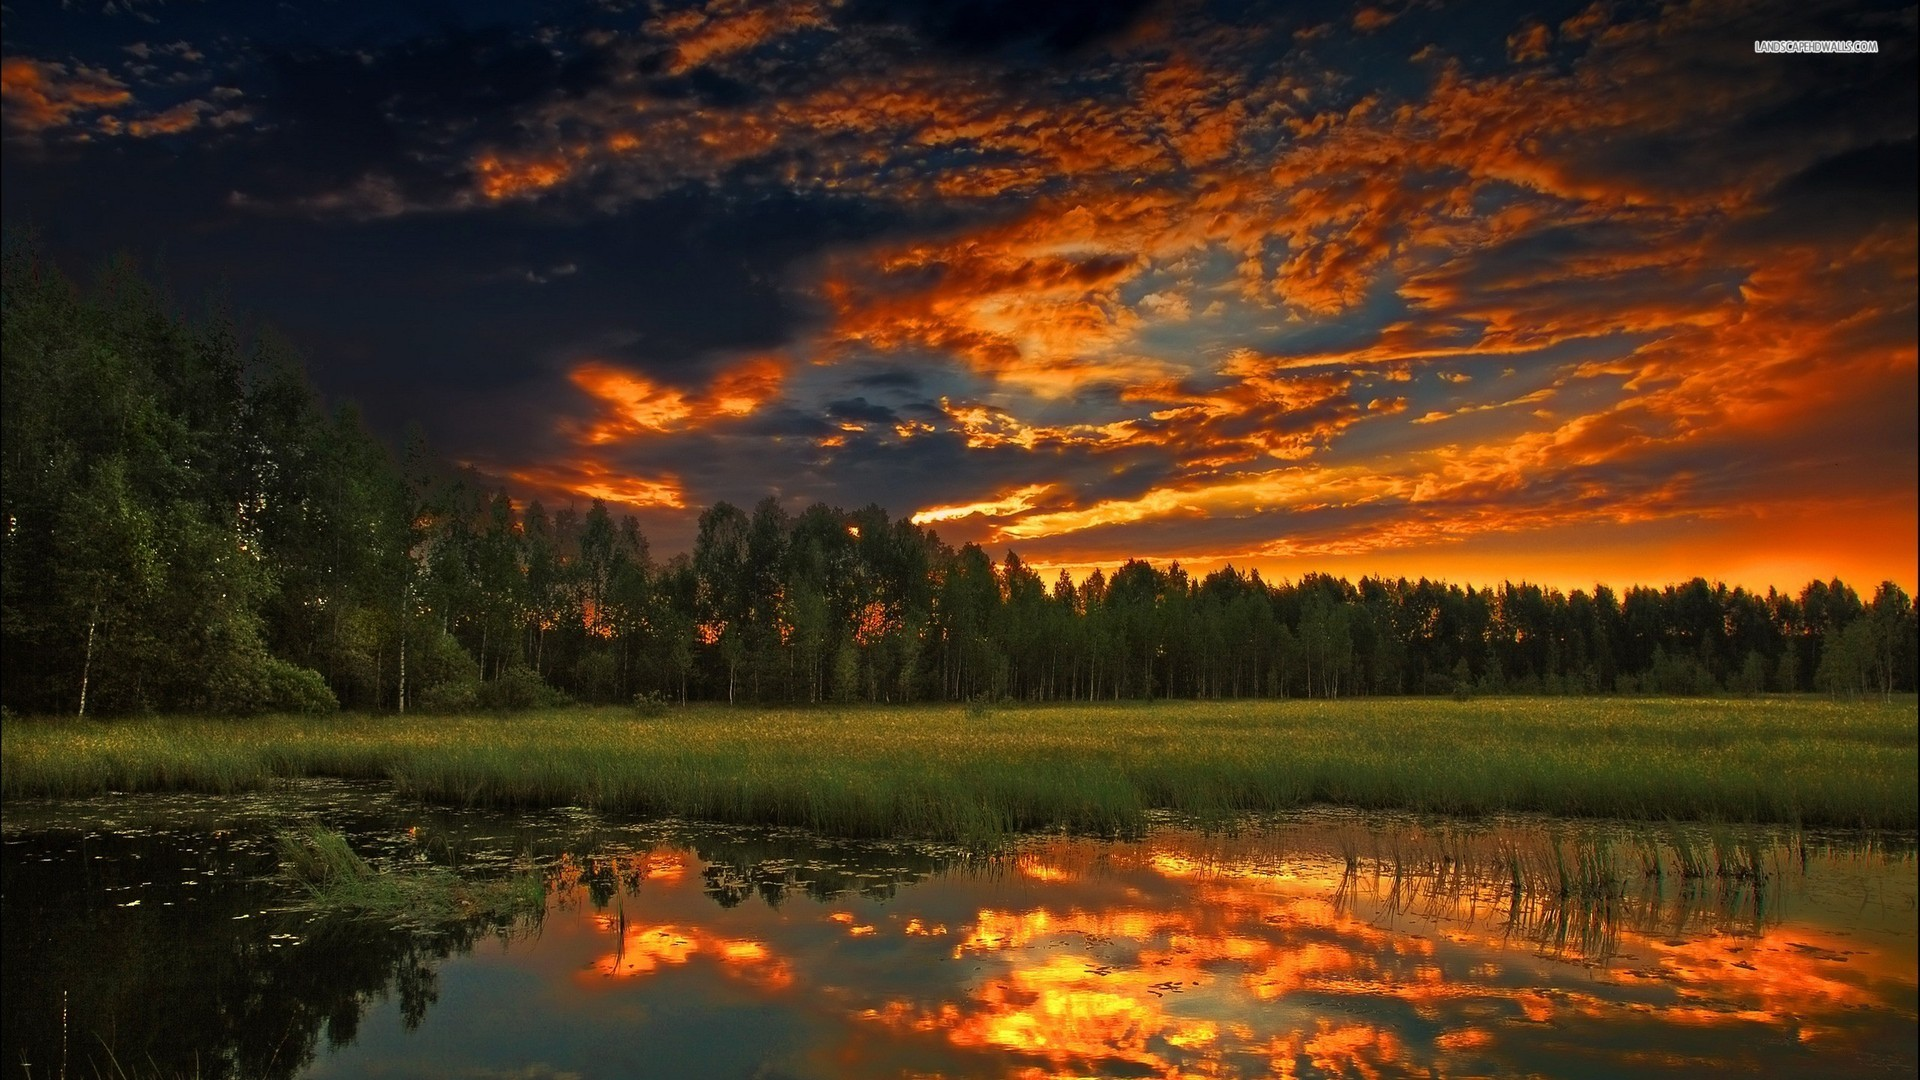 ... Forest Pond at Dusk wallpaper 1920x1080 1080p ...